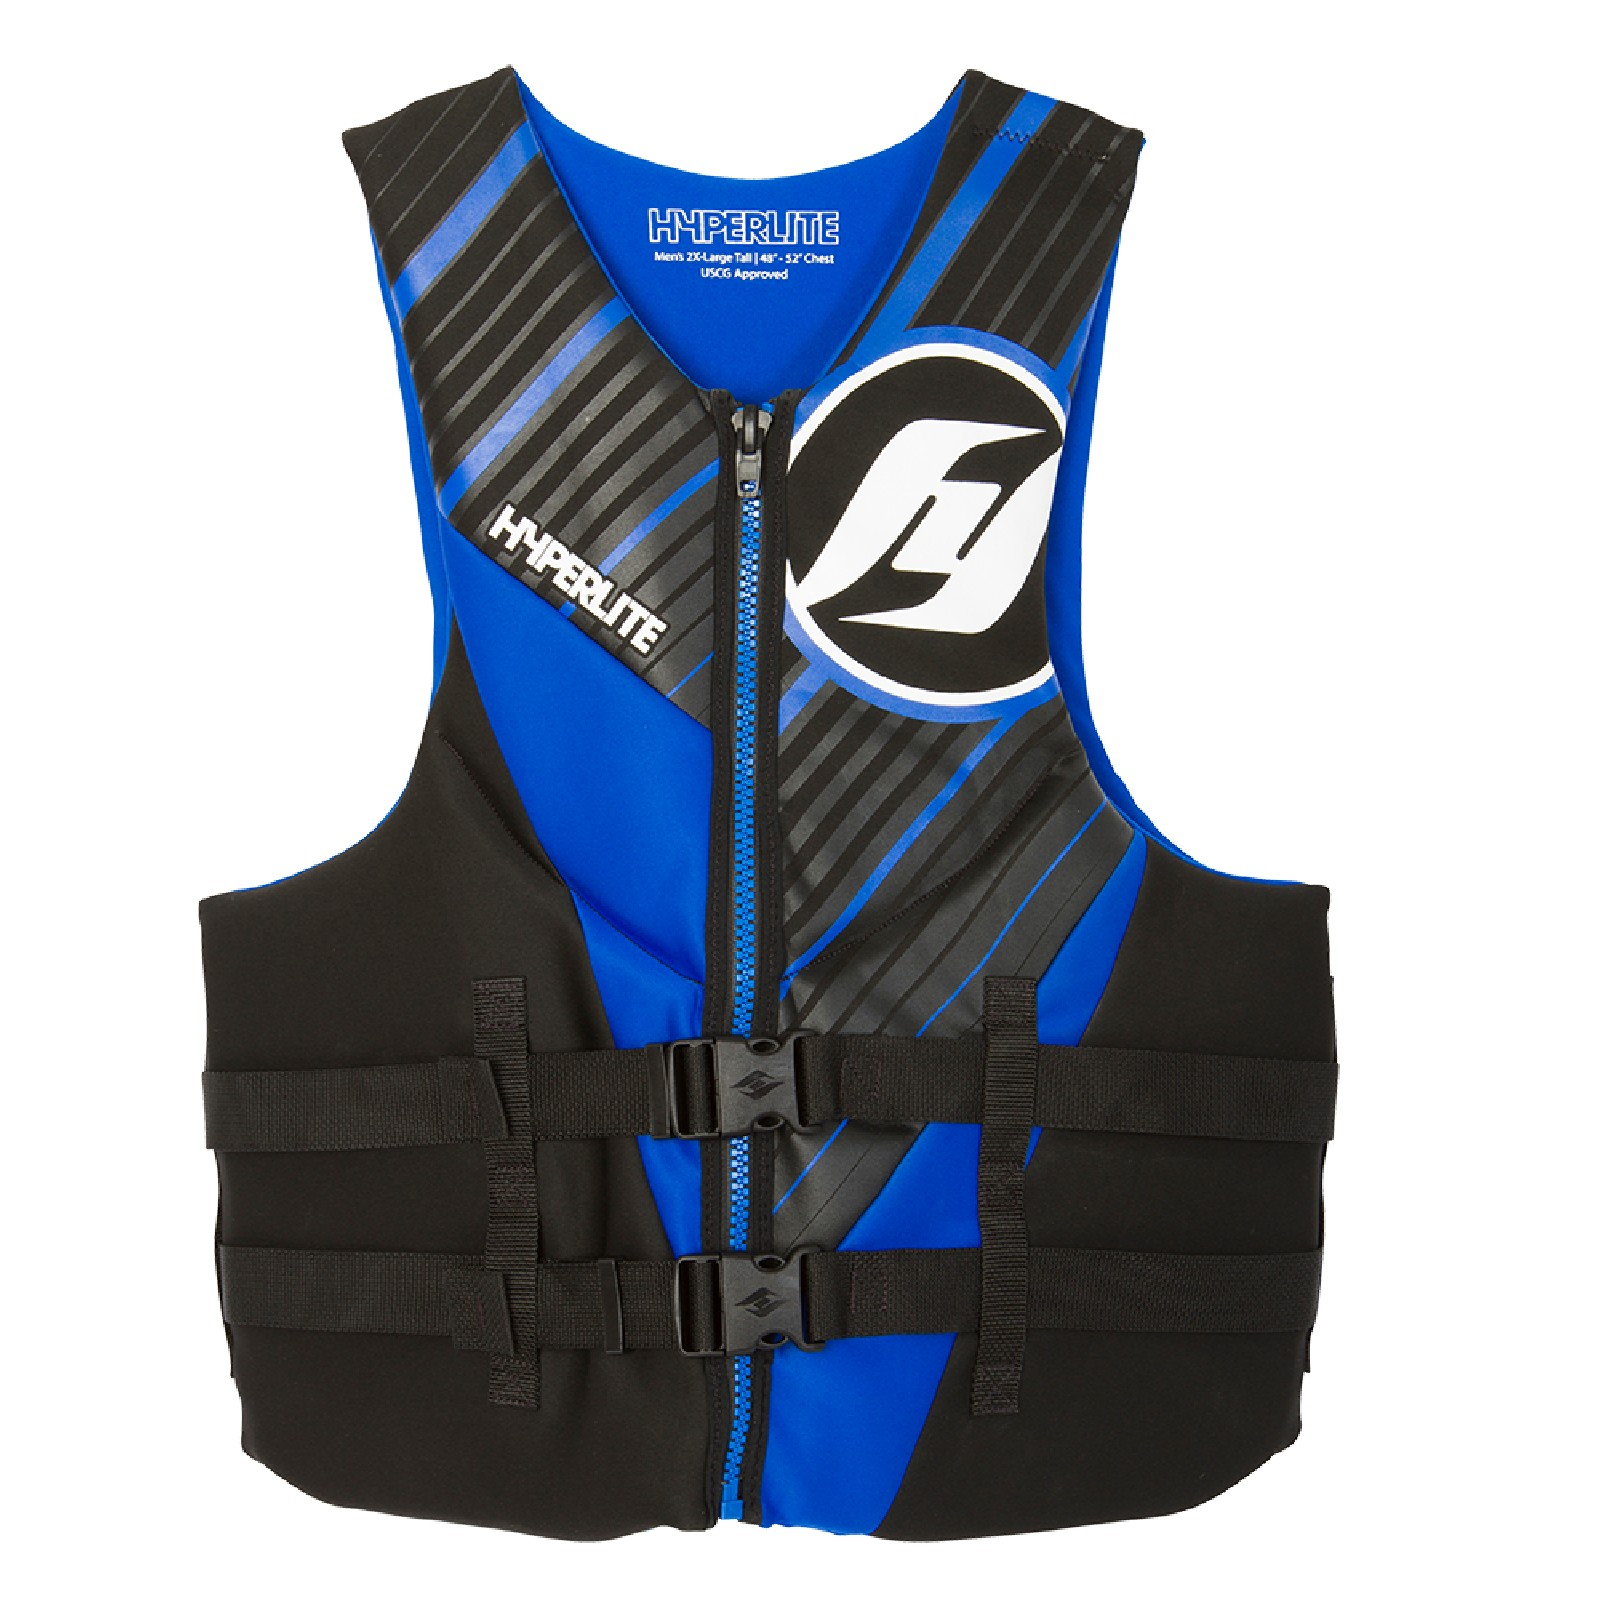 MEN'S INDY BIG & TALL HYPERLITE 2019